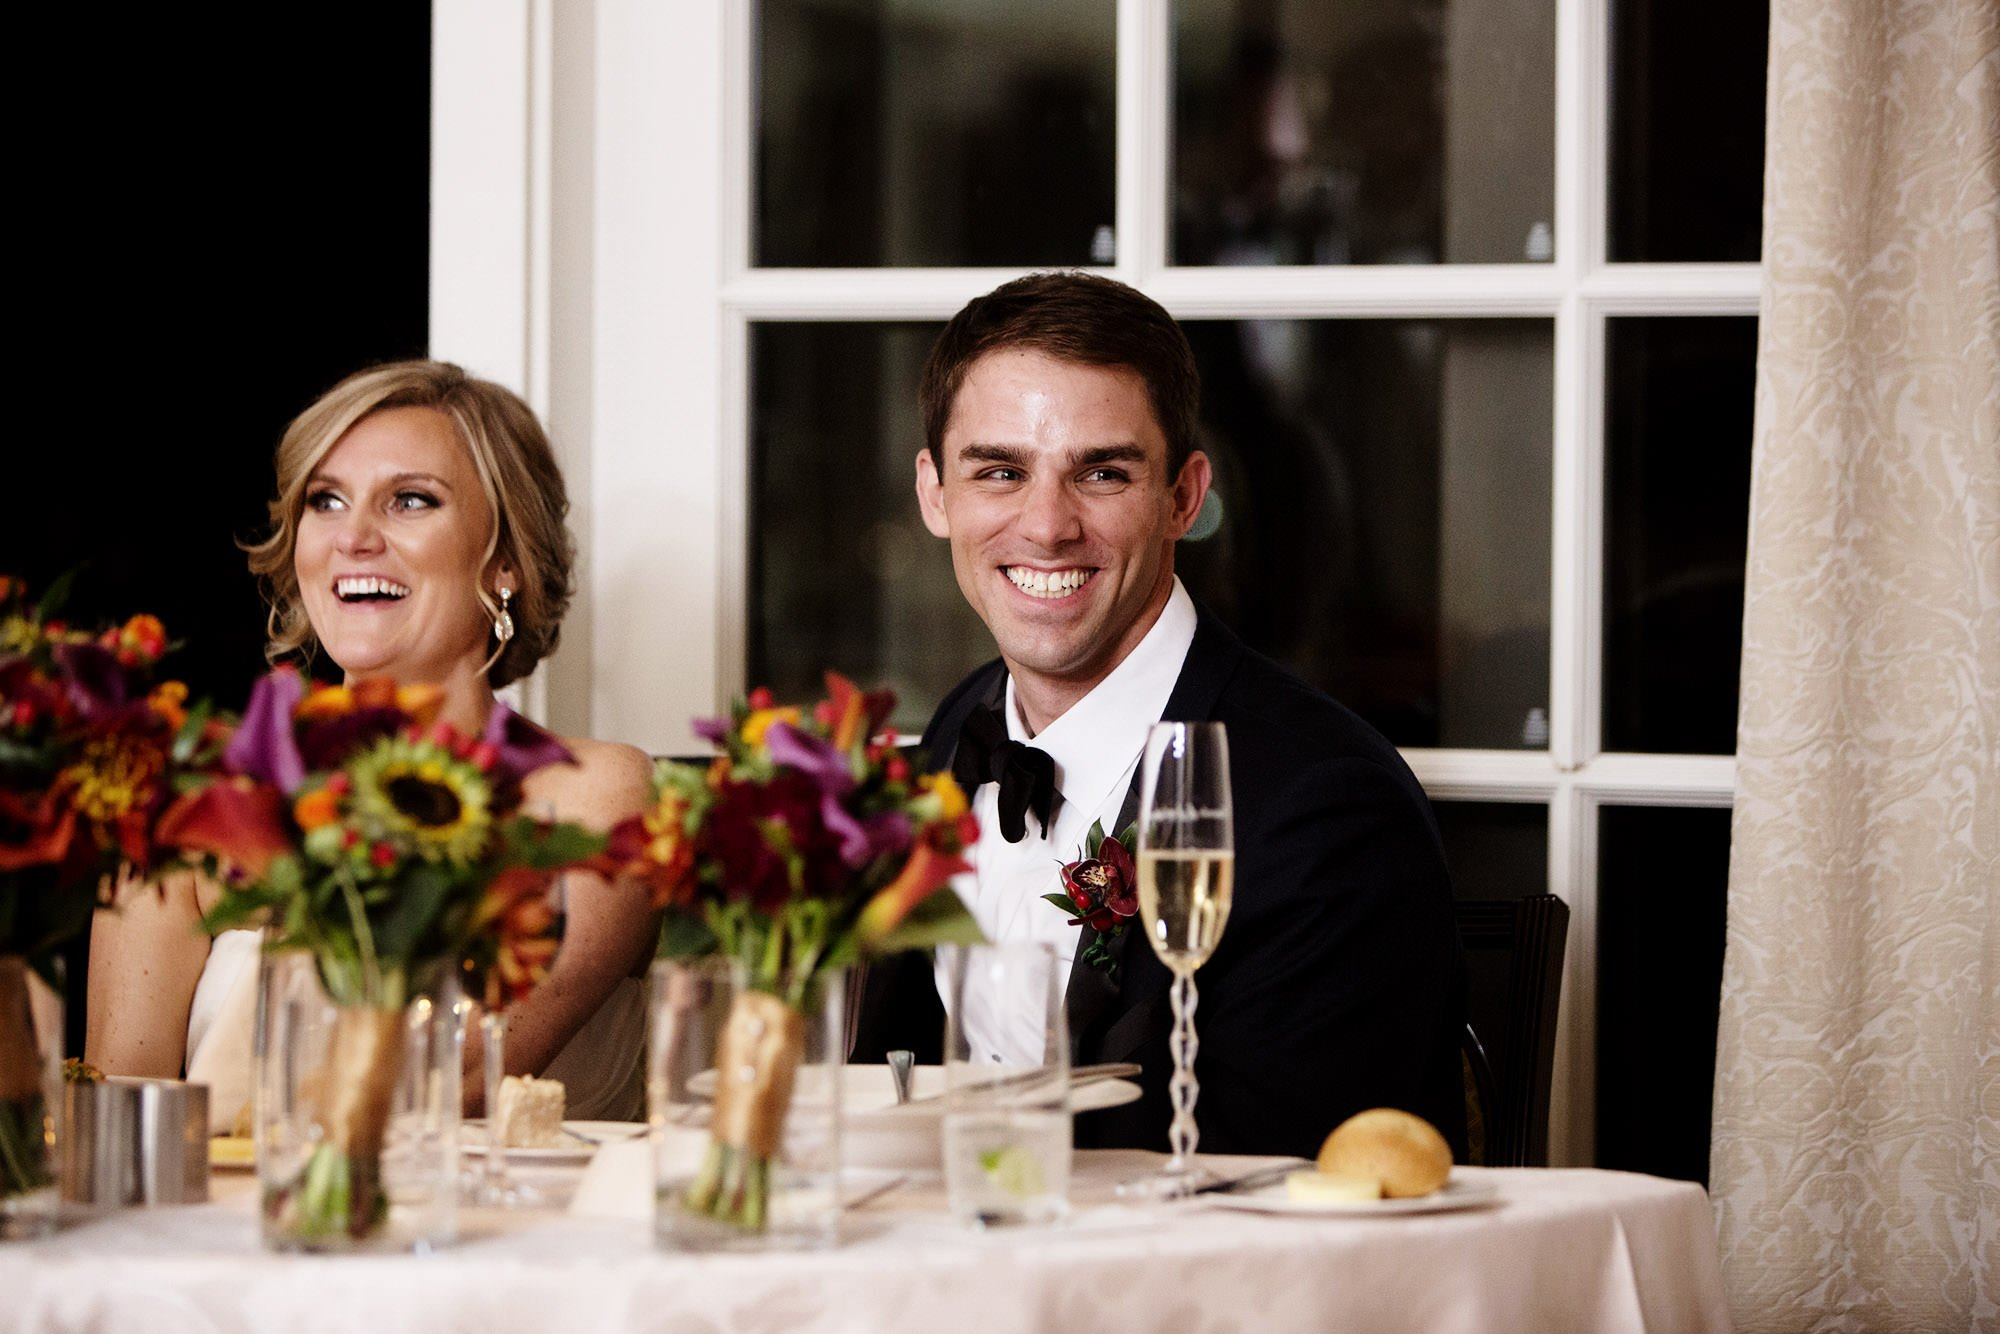 The couple laugh during the Hay Adams DC Wedding reception.